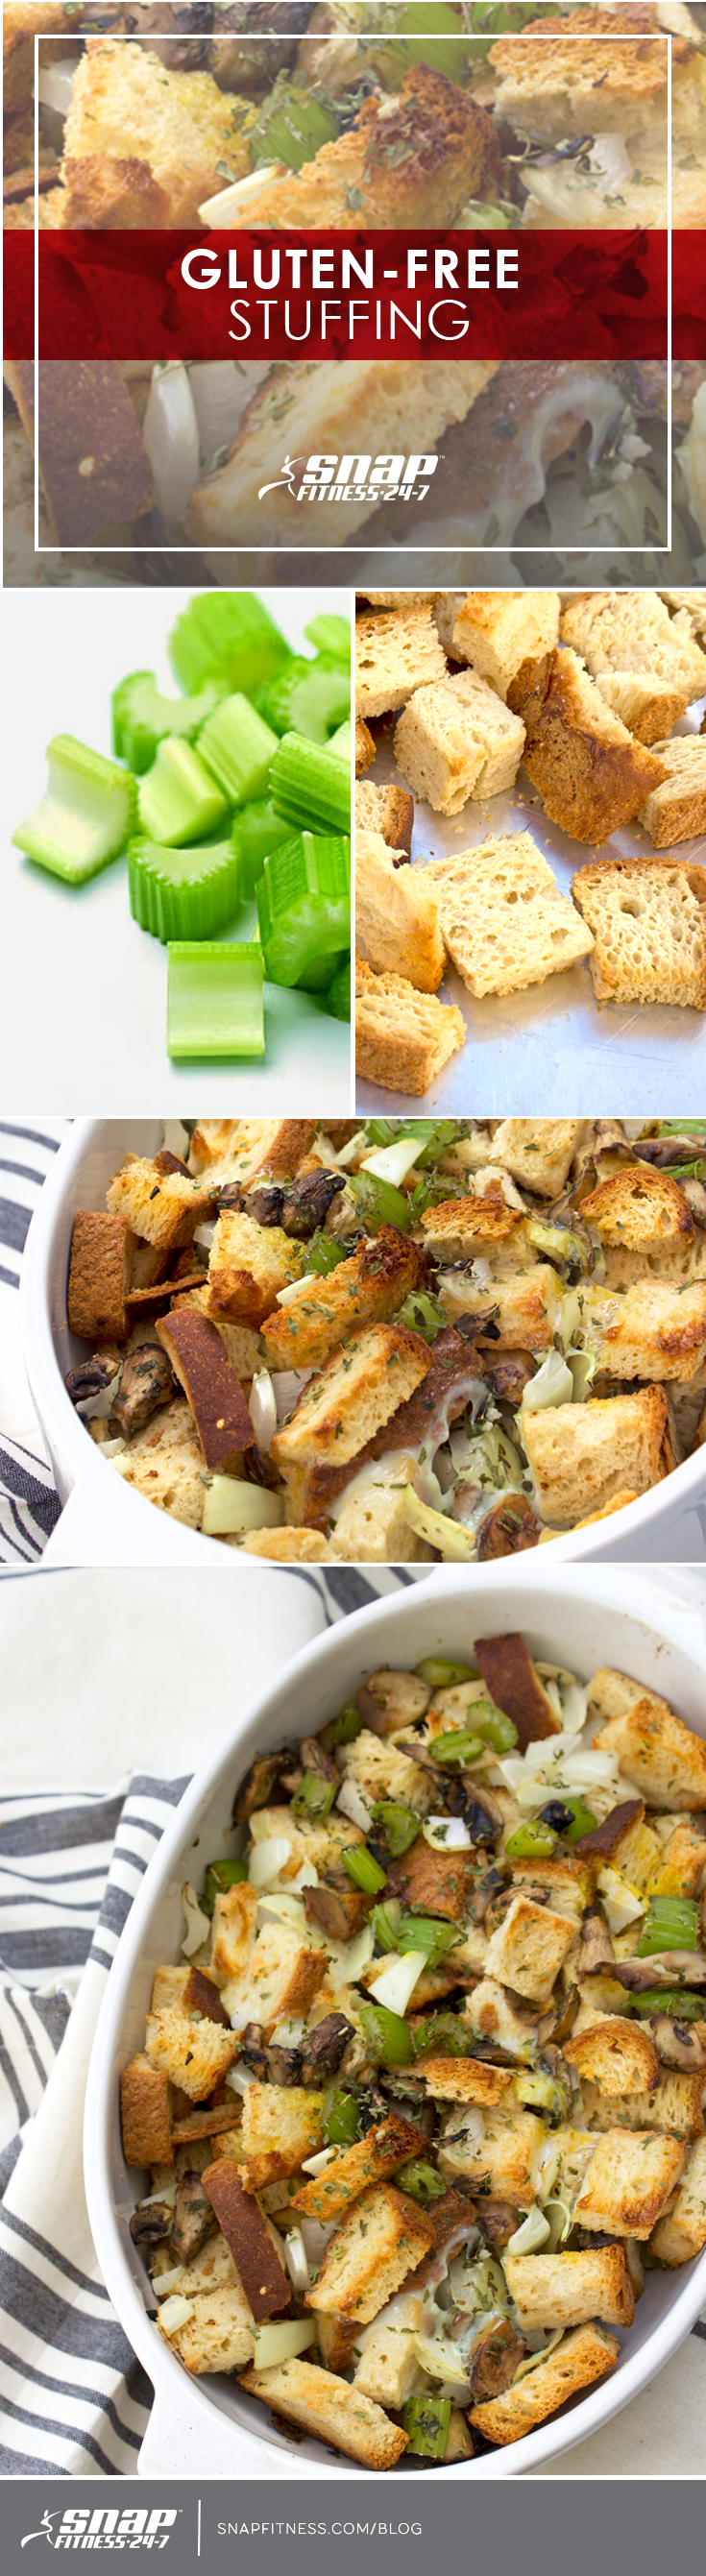 """""""Like"""" if you're ready for a delicious Thanksgiving feast! Remember, the holidays don't have to be unhealthy. Whip up some of our favorite gluten-free stuffing for your Thanksgiving gathering this year."""